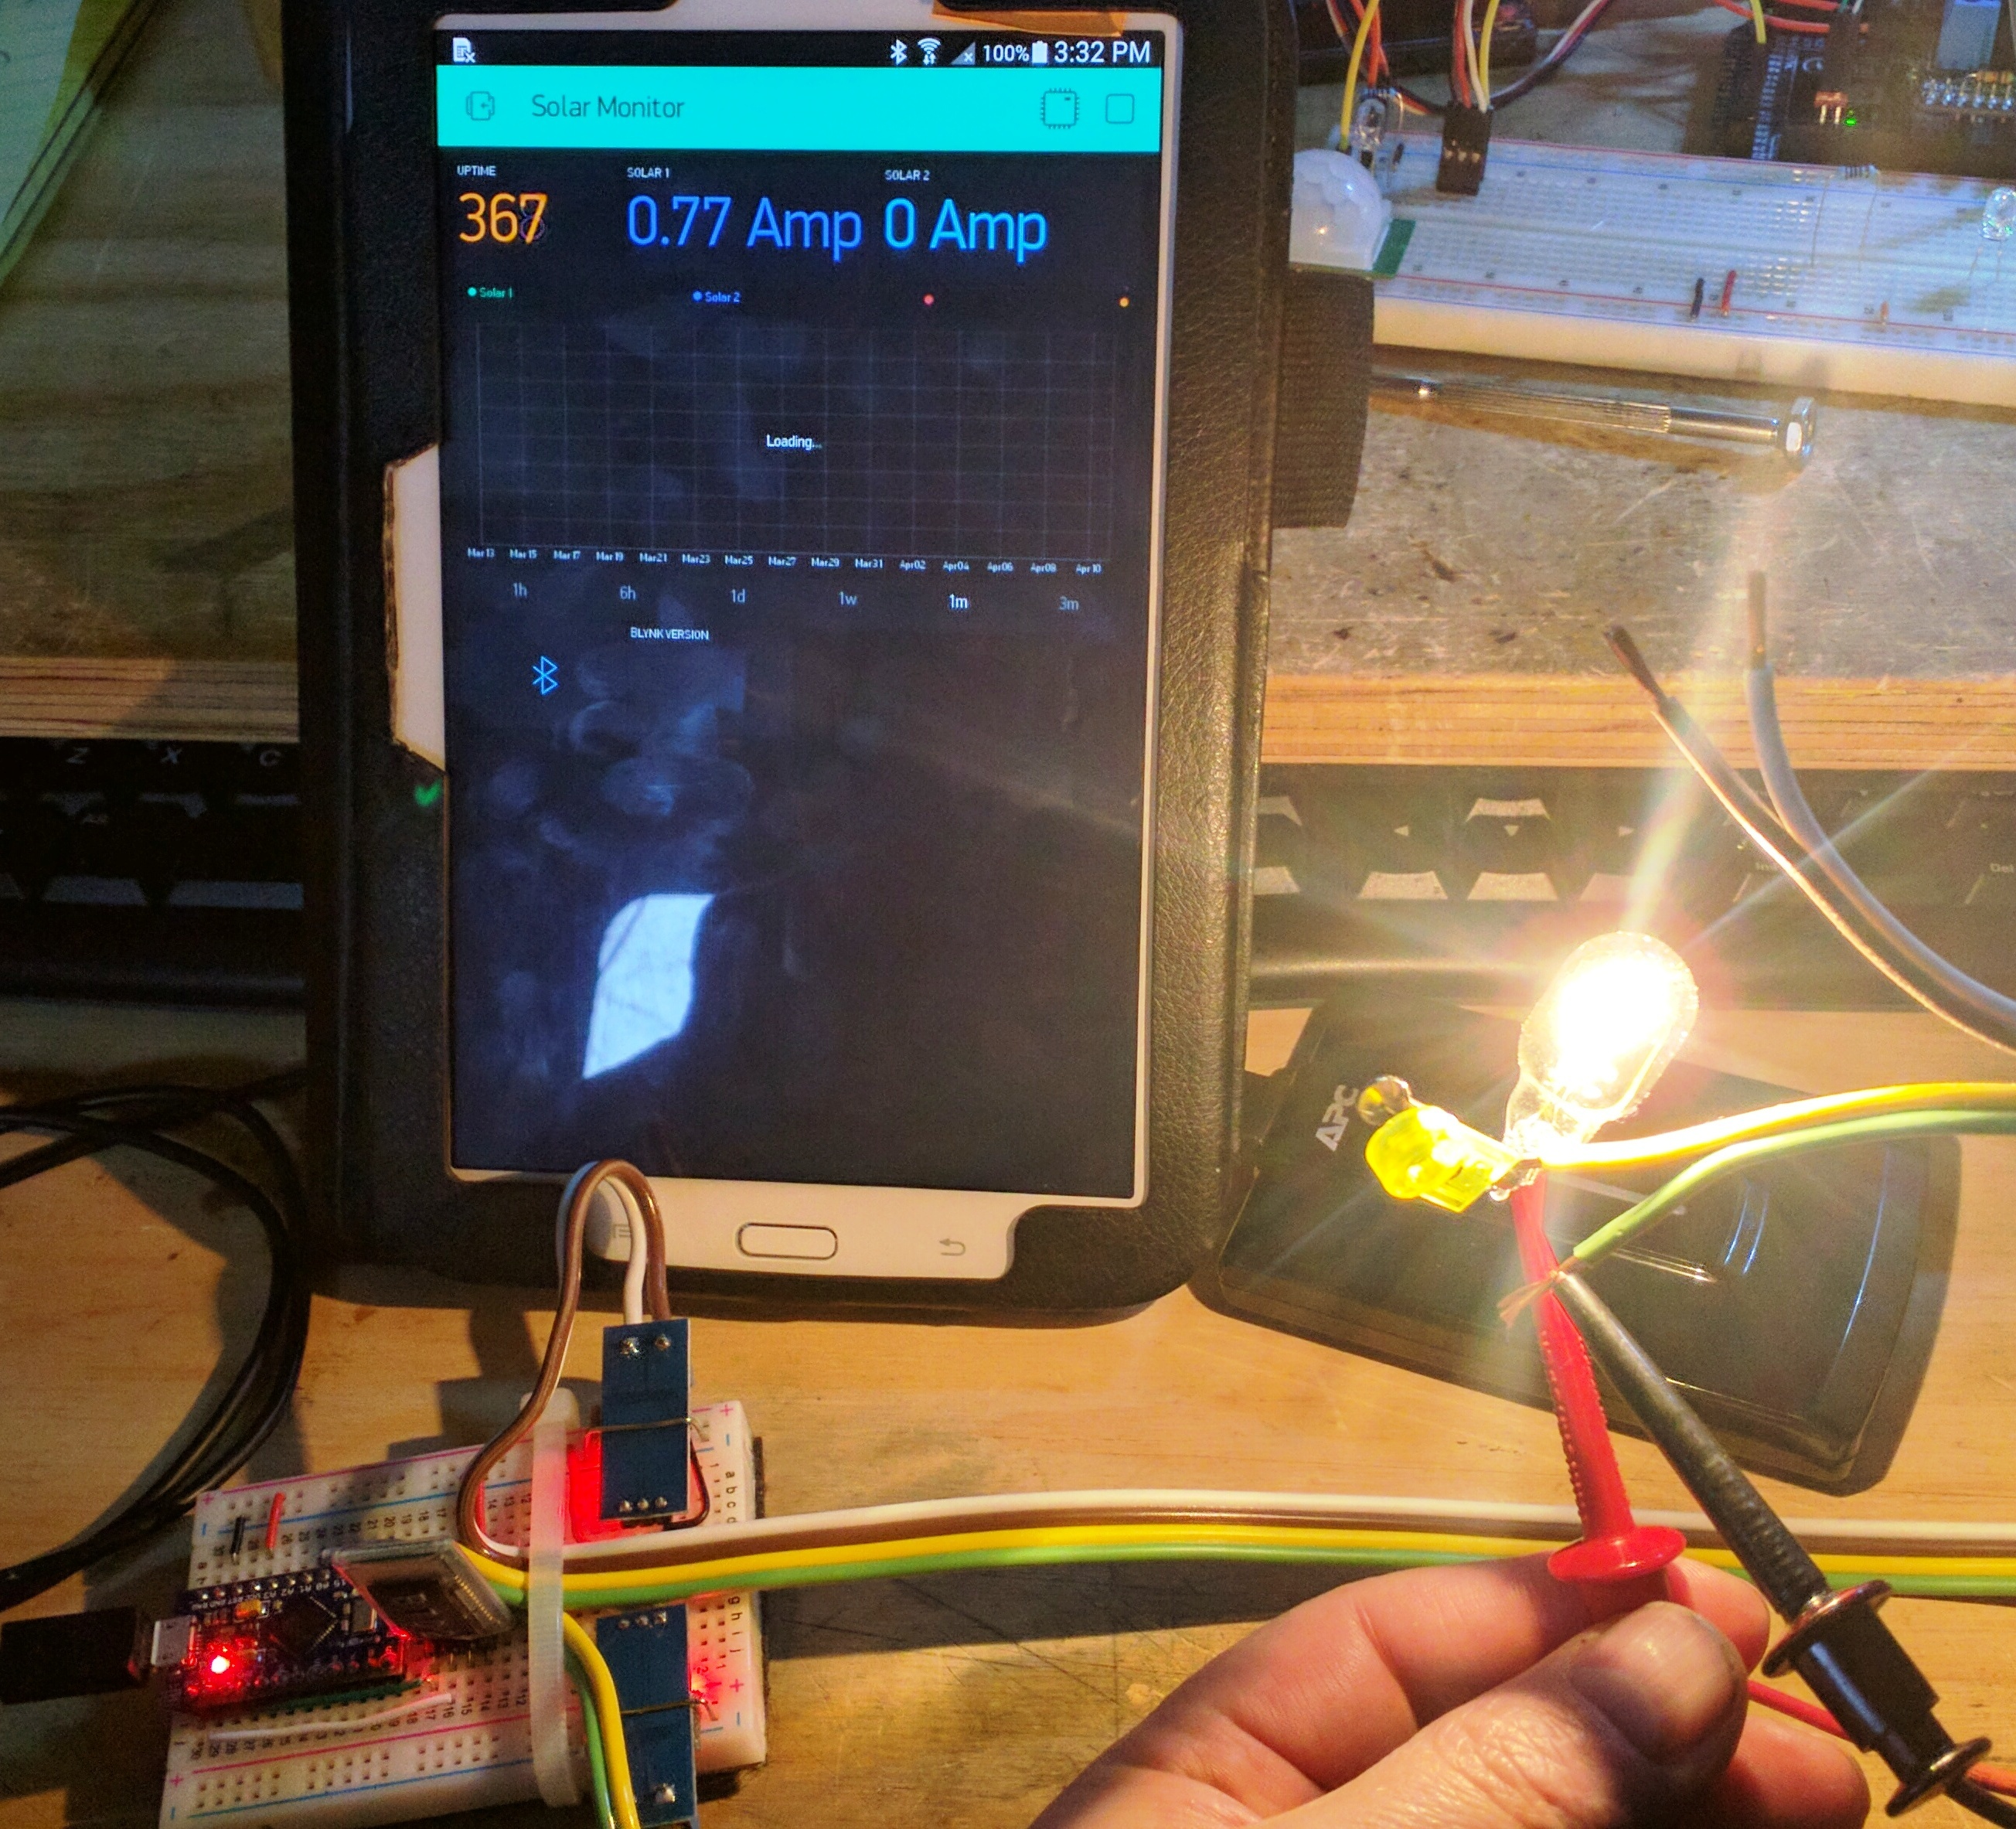 Dirt Simple Solar Charge Monitor using INA219 (formerly